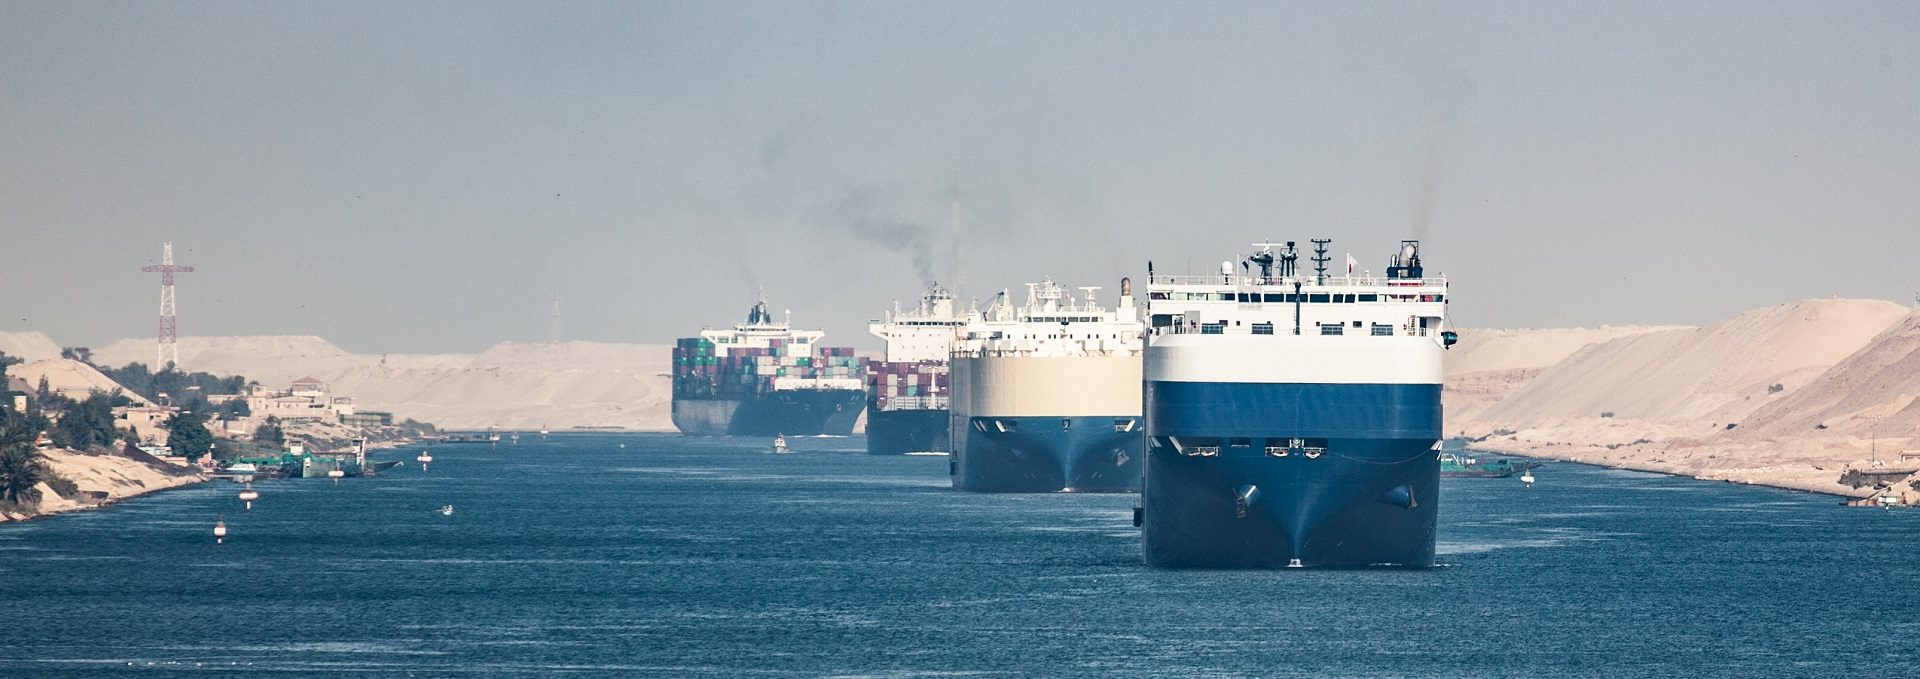 Article: The Ever Given and the Blockage of the Suez Canal: What Next?